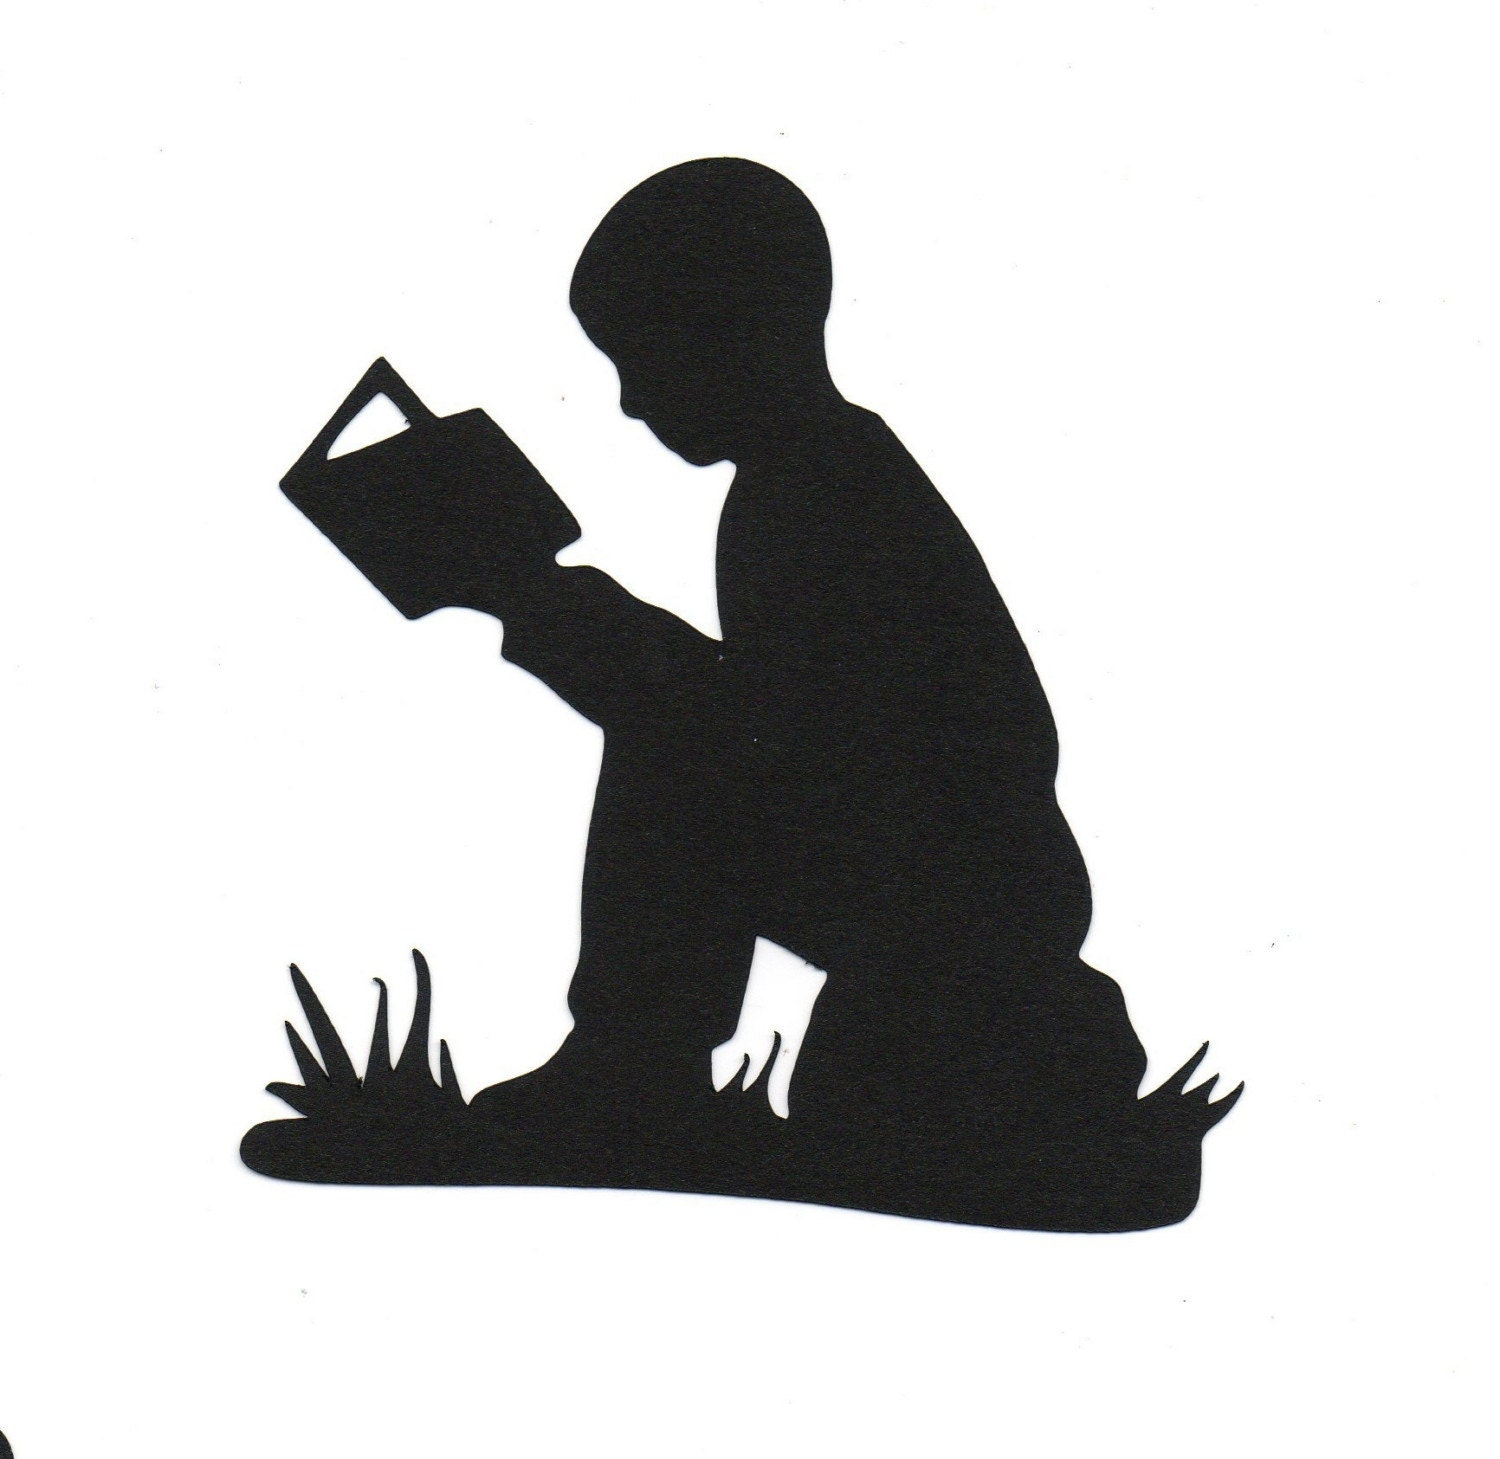 Child Reading Silhouette Images & Pictures - Becuo Children Reading Silhouette